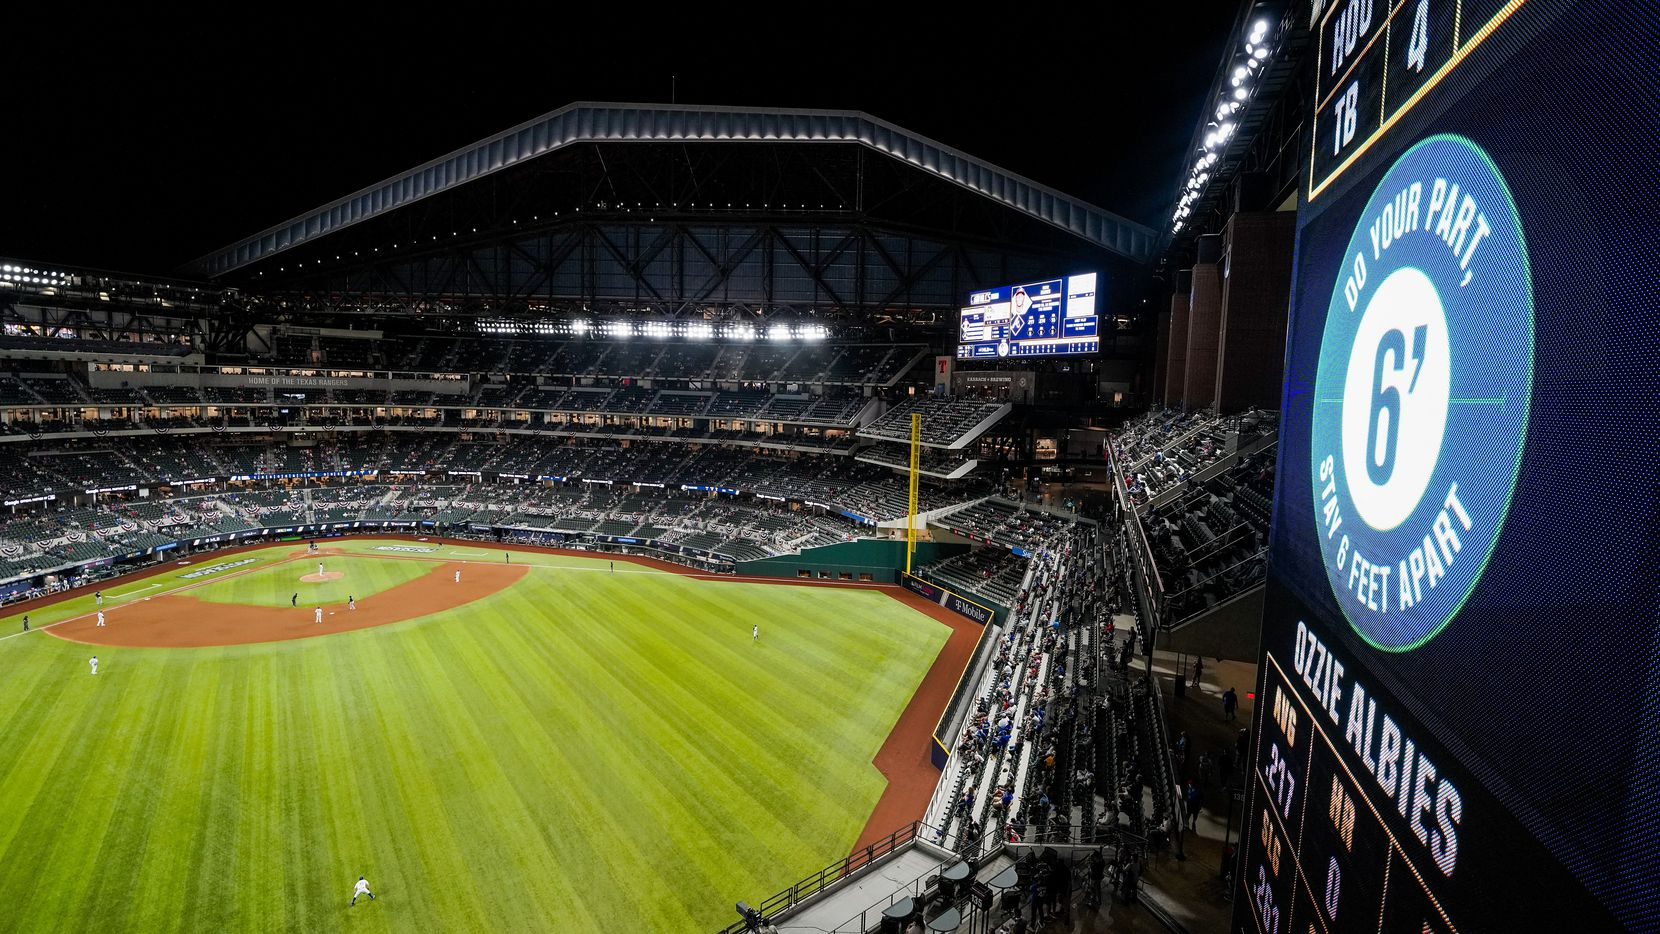 A scoreboard sign in center field encourages social distancing during the eighth inning in Game 1 of a National League Championship Series between the Los Angeles Dodgers and the Atlanta Braves at Globe Life Field on Monday, Oct. 12, 2020.